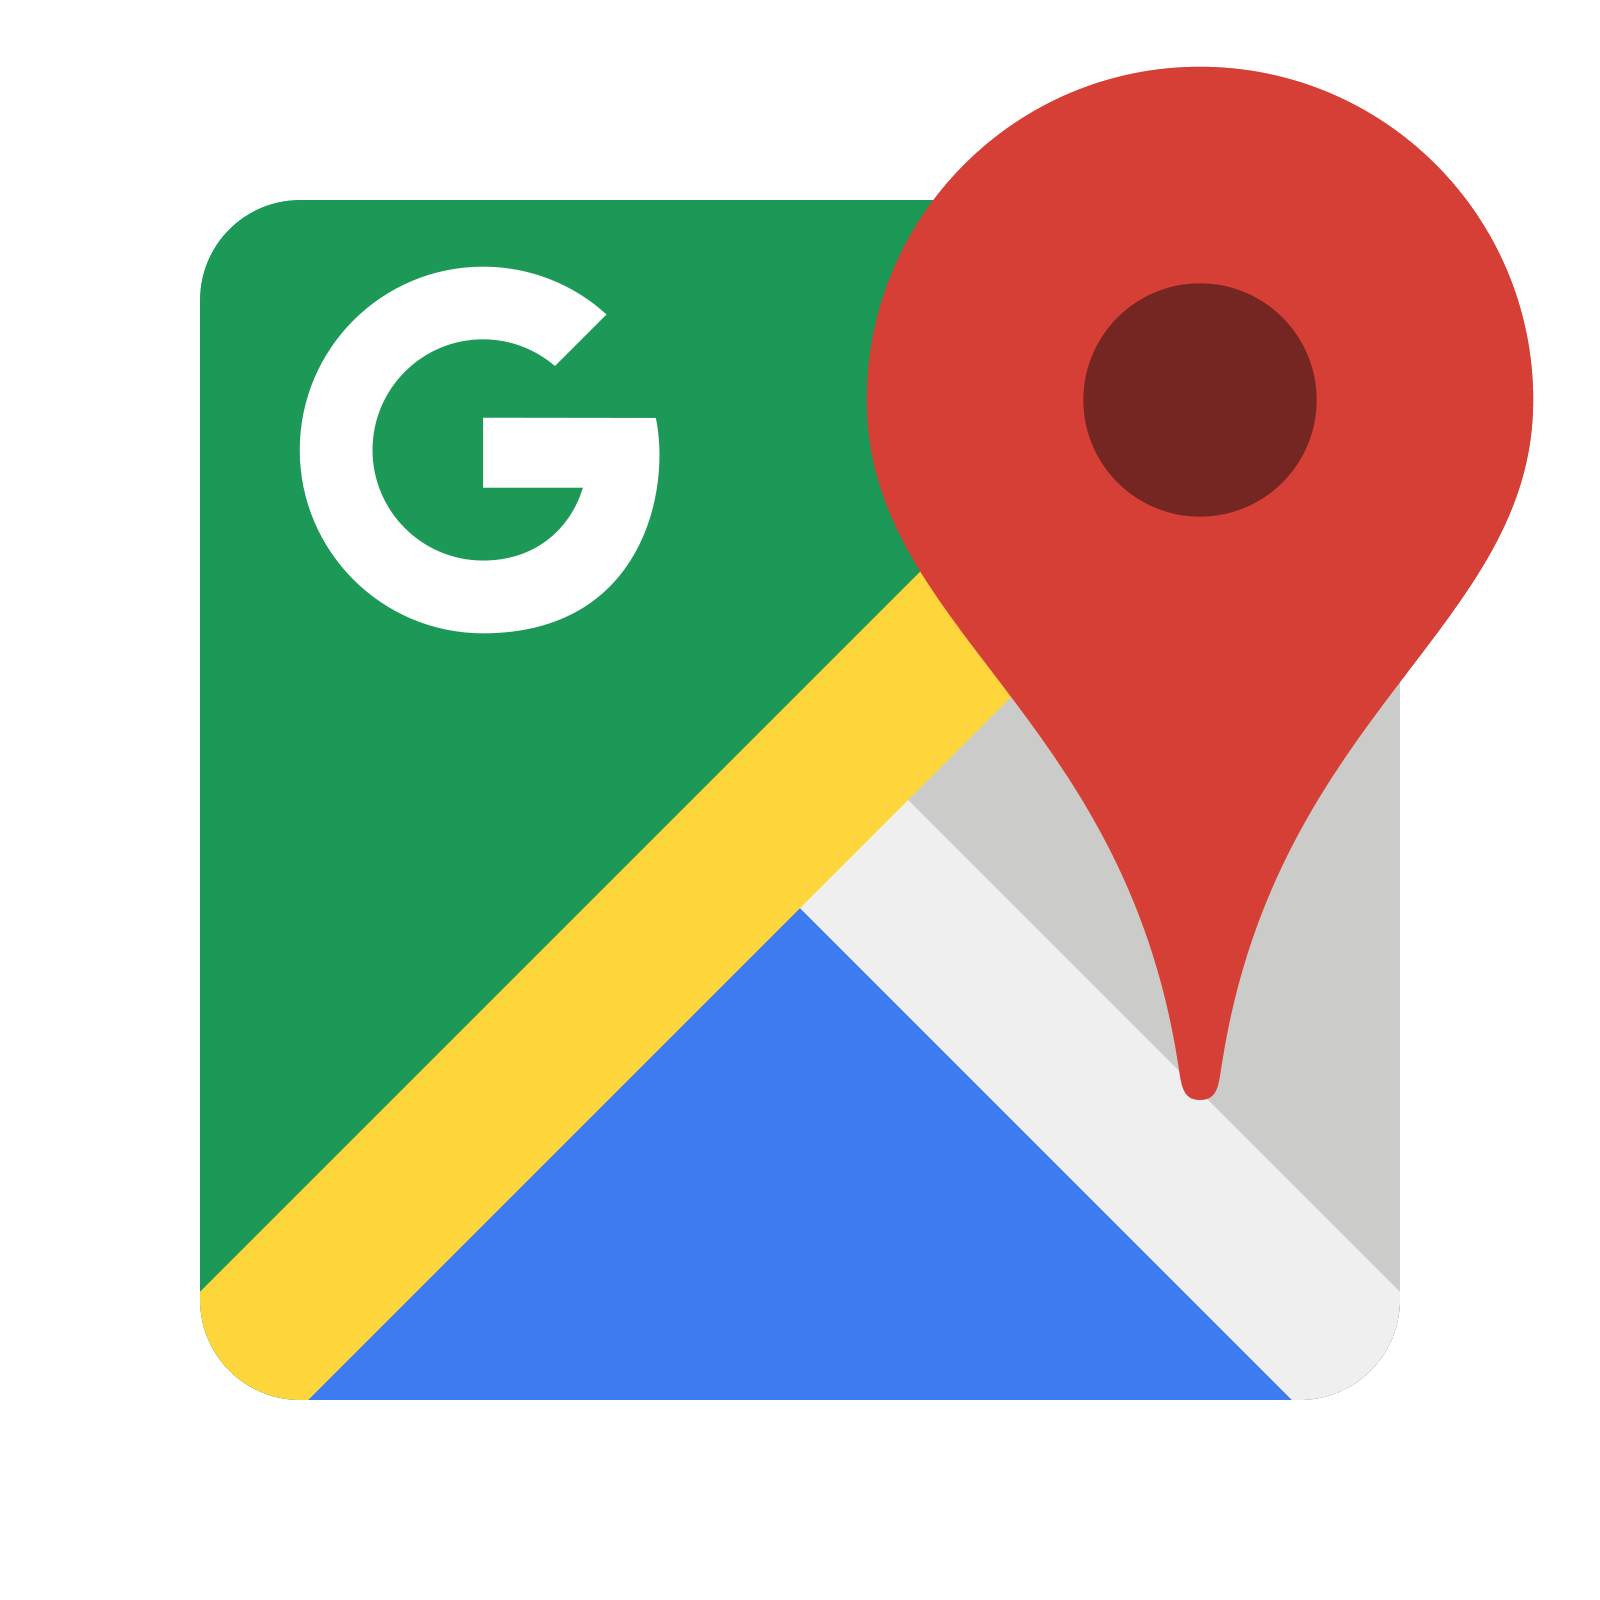 Google clipart images money clipart transparent Google Maps Icon - free download, PNG and vector clipart transparent